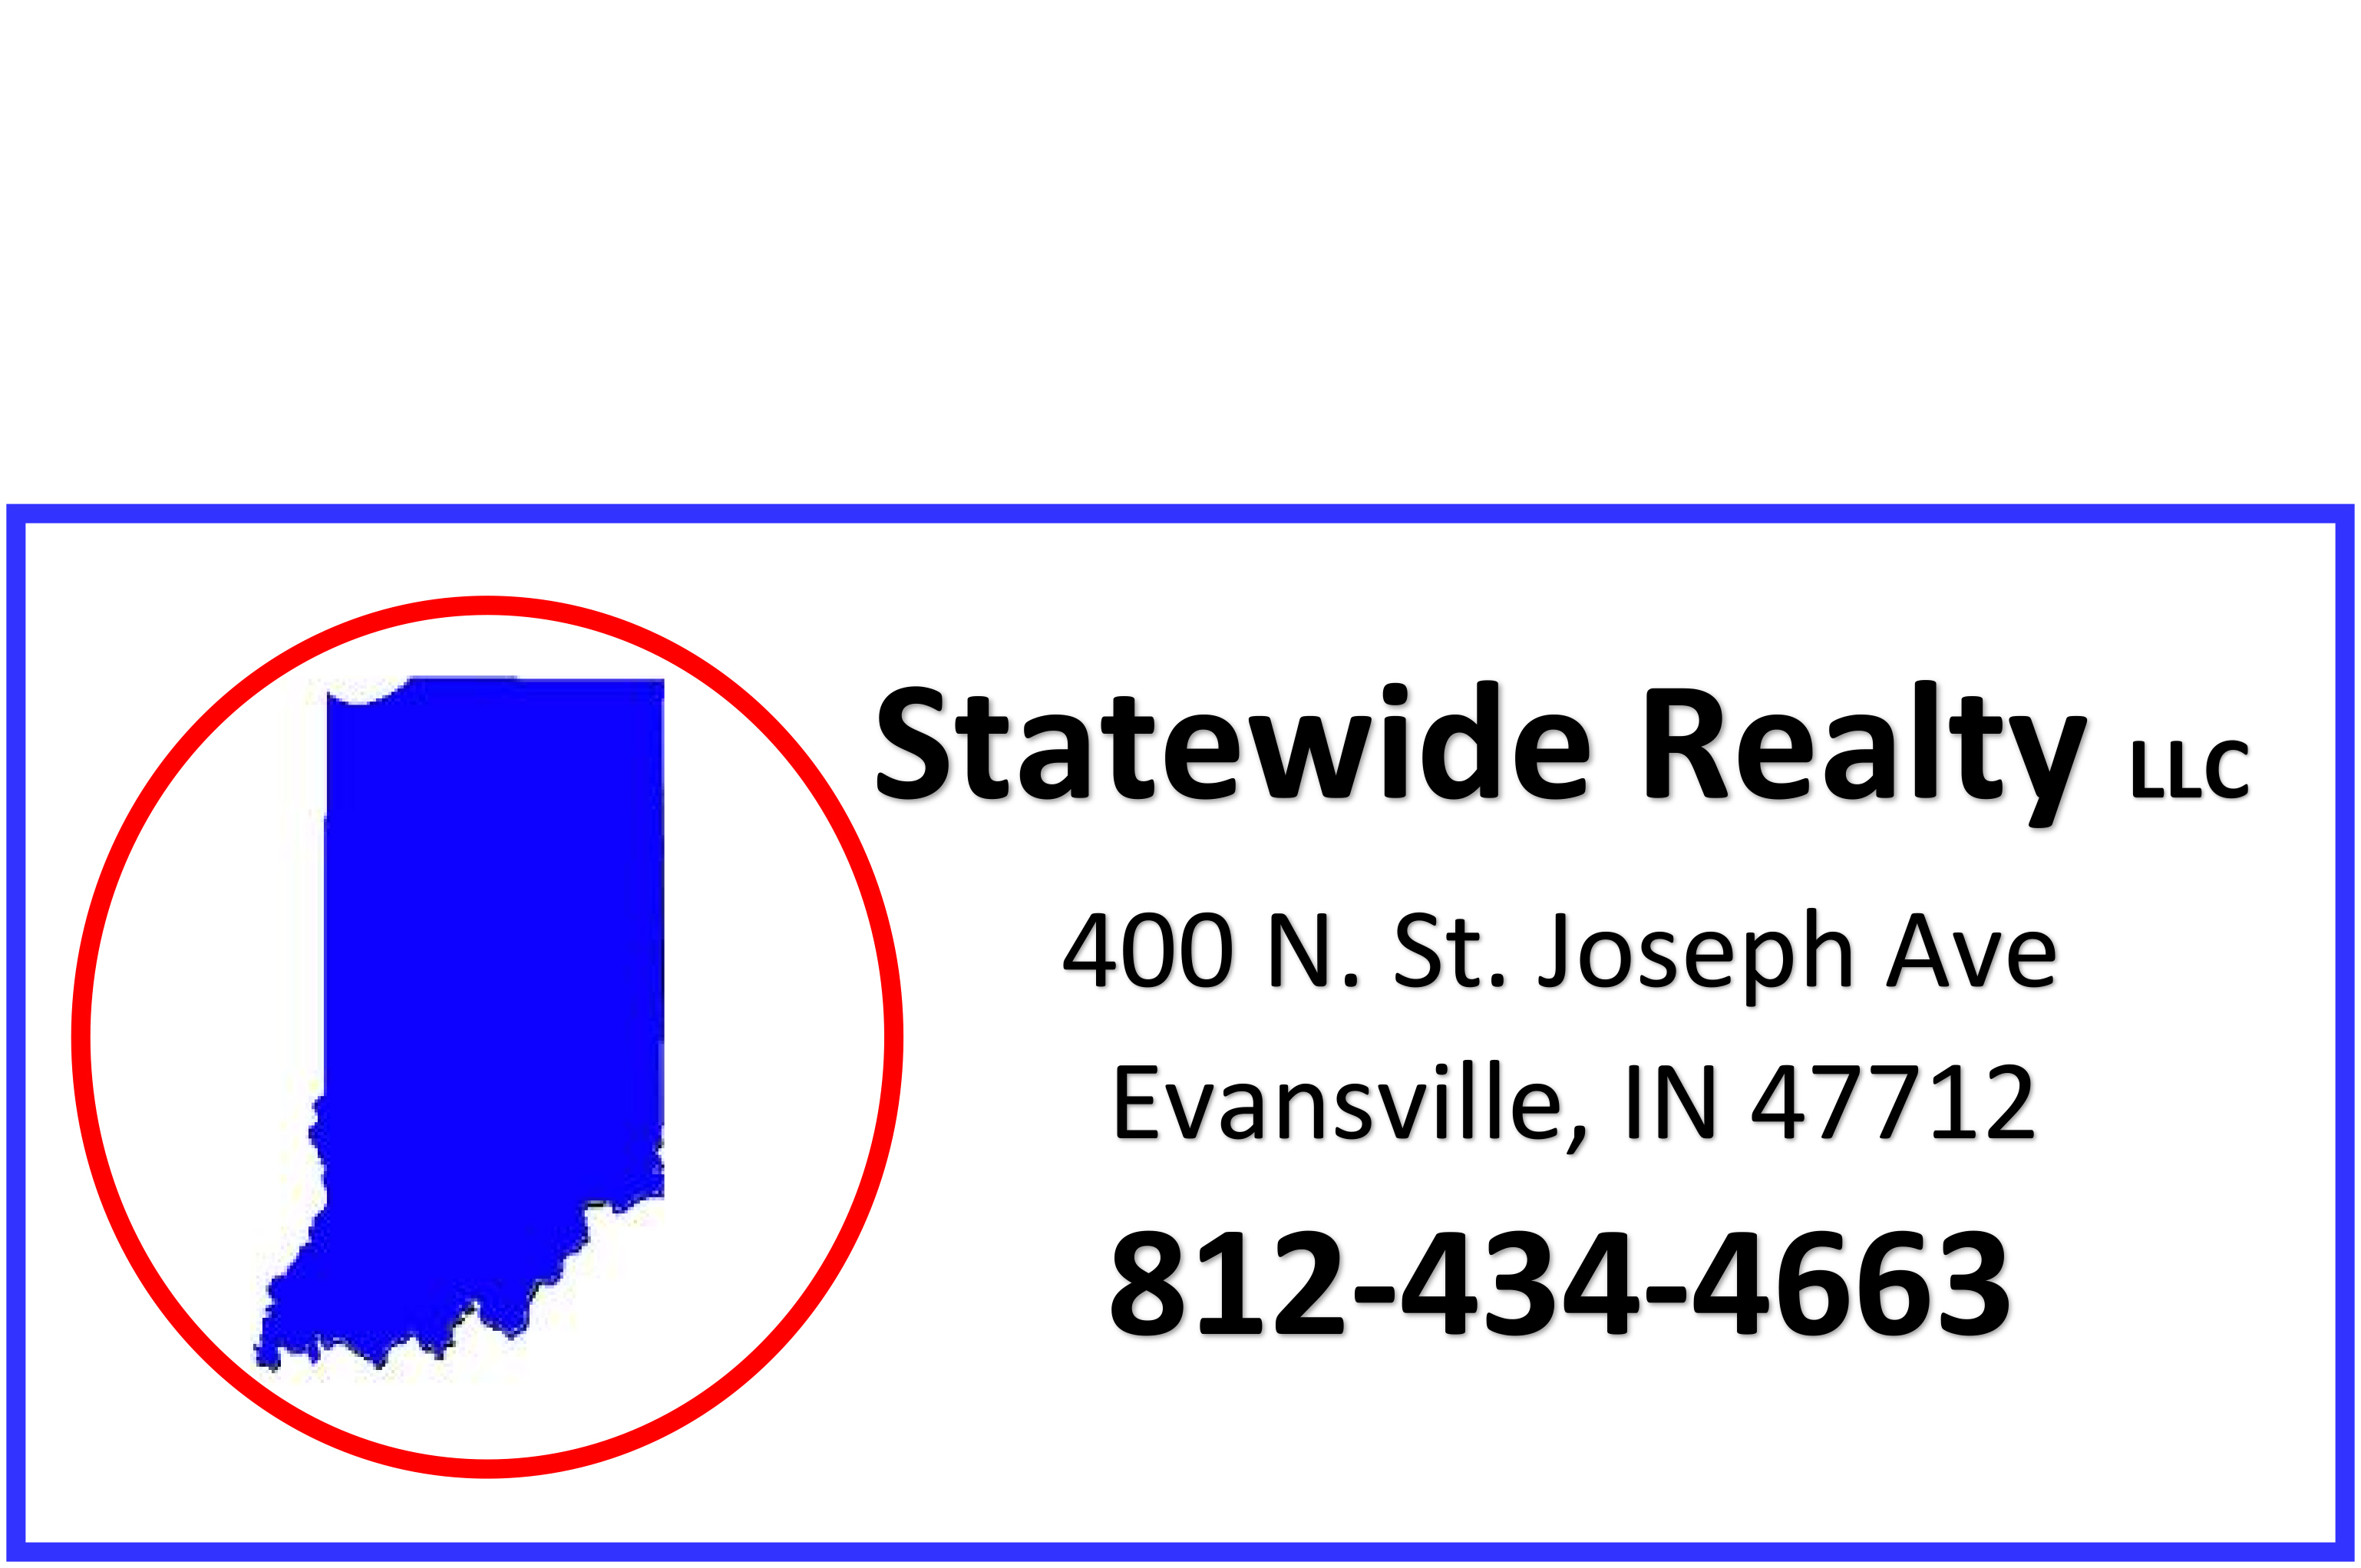 Statewide Realty, LLC